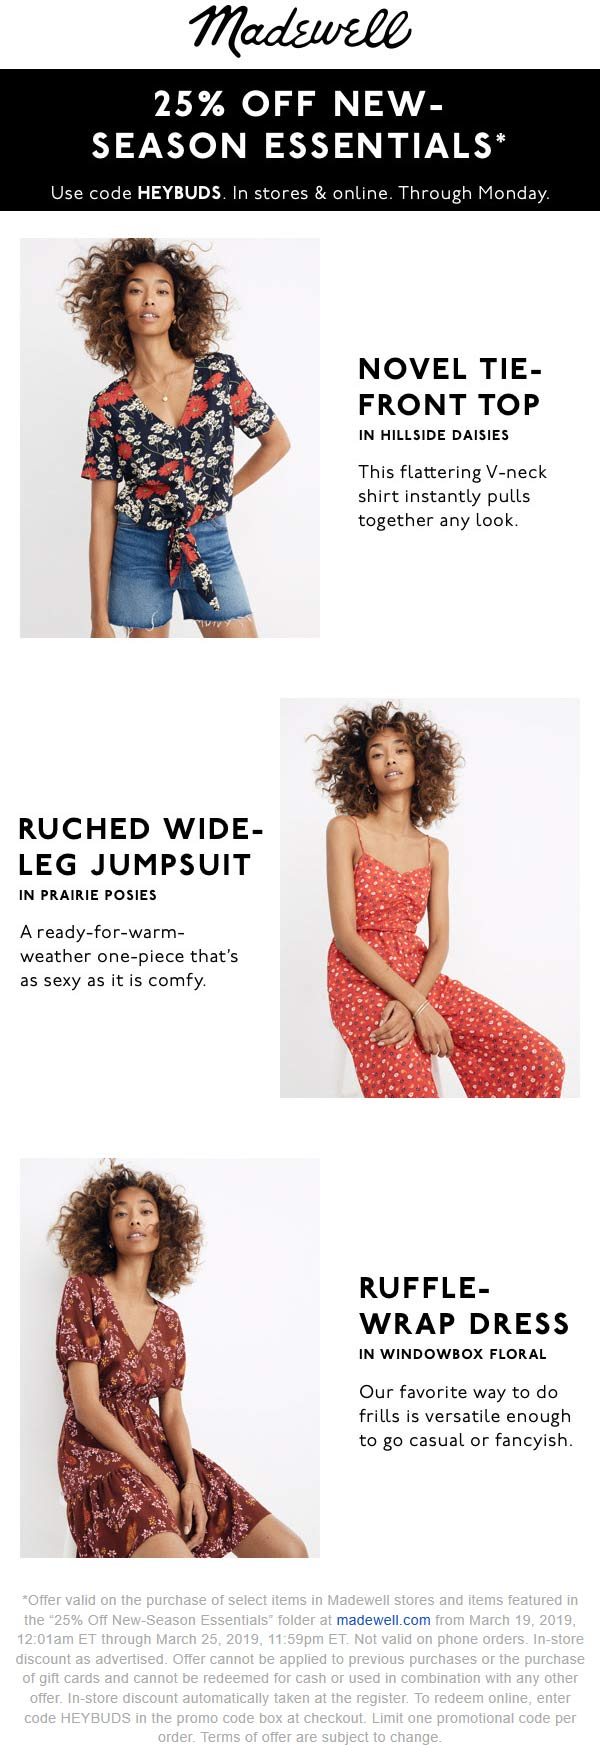 Madewell Coupon June 2019 25% off spring at Madewell, or online via promo code HEYBUDS